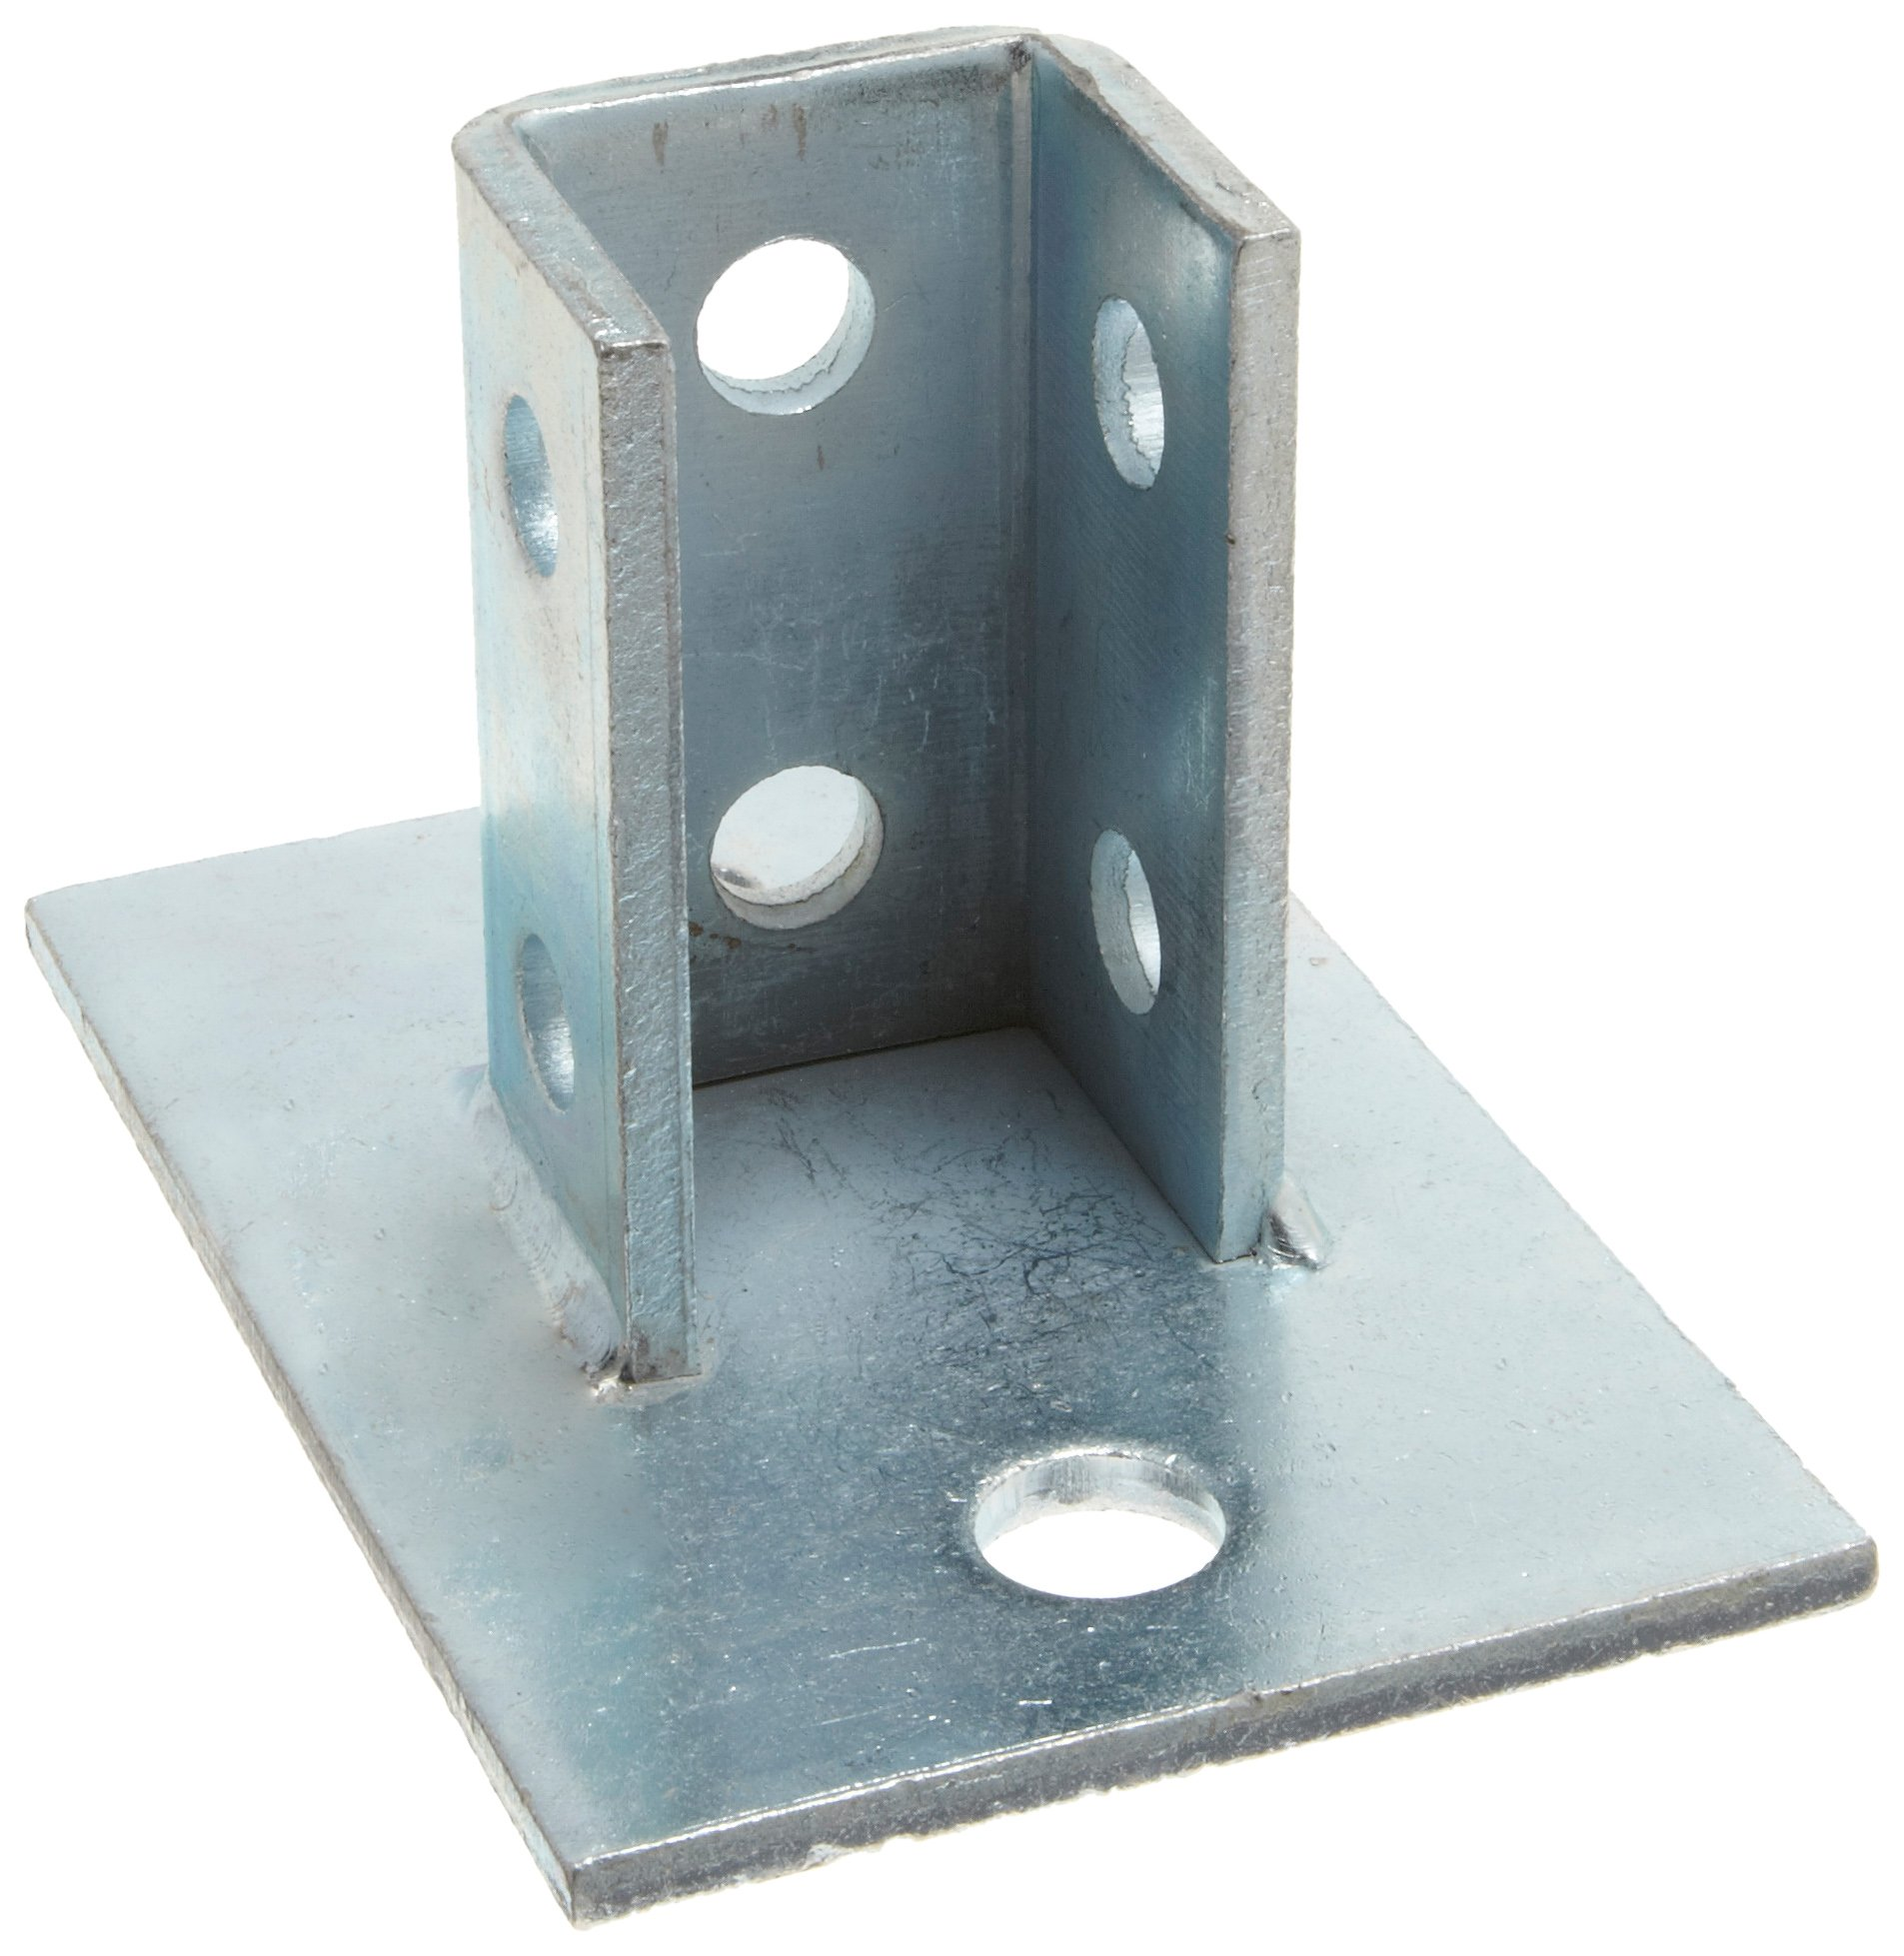 Morris Products 17450 Post Base Single Channel, 2 Hole, Standard, 3-1/2'' Channel